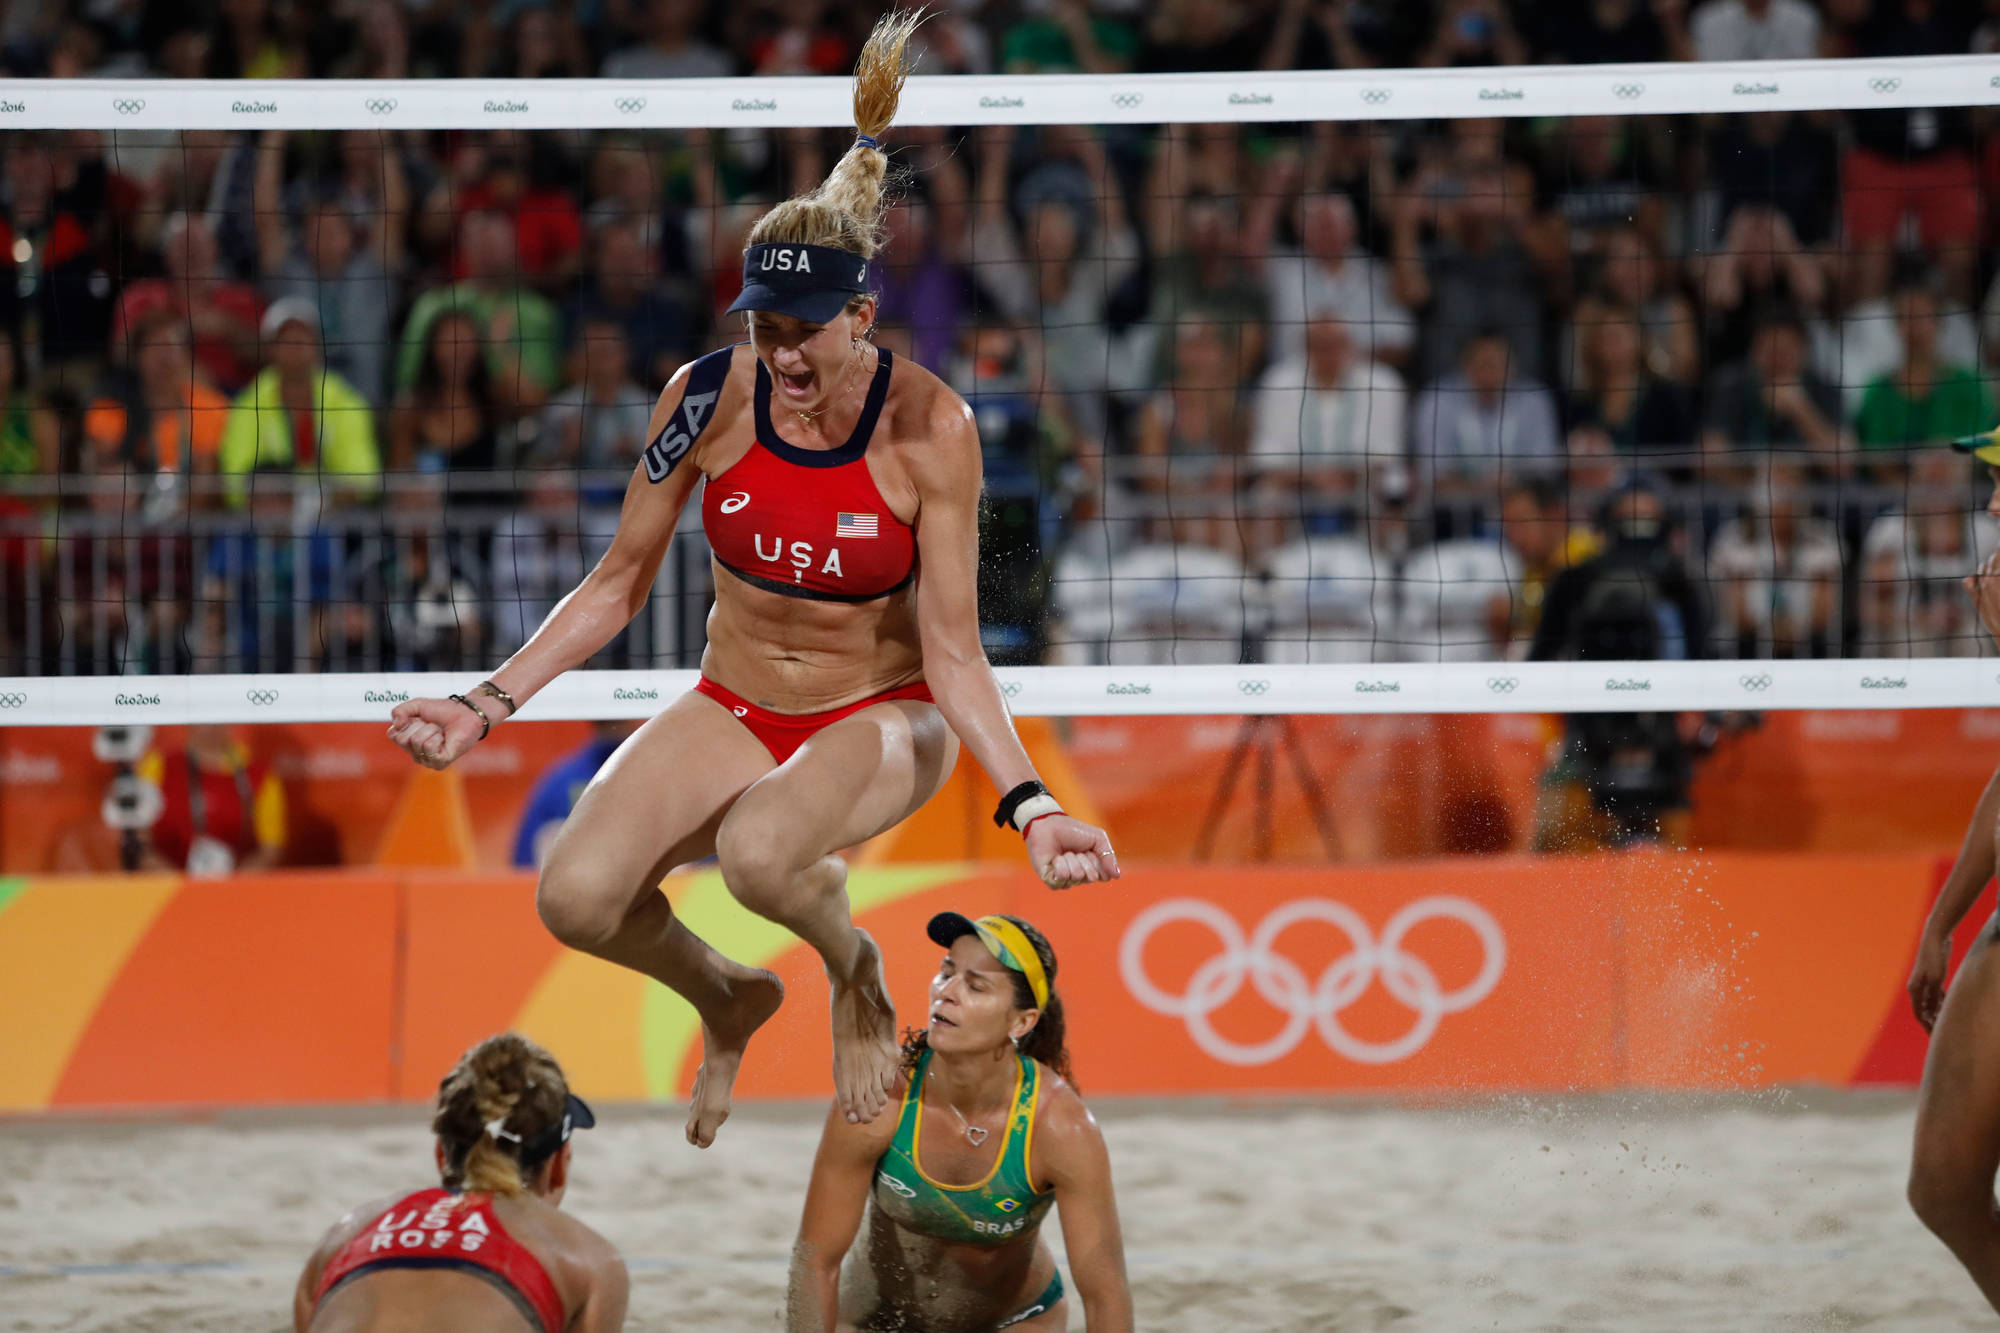 Kerri Walsh Jennings of the United States leaps in the air and celebrates in the Beach Volleyball Women's Bronze medal match against Larissa Franca Maestrini and Talita Rocha of Brazil at the Beach Volleyball Arena at the 2016 Rio Summer Olympics in Rio de Janeiro, Brazil, on August 17, 2016.